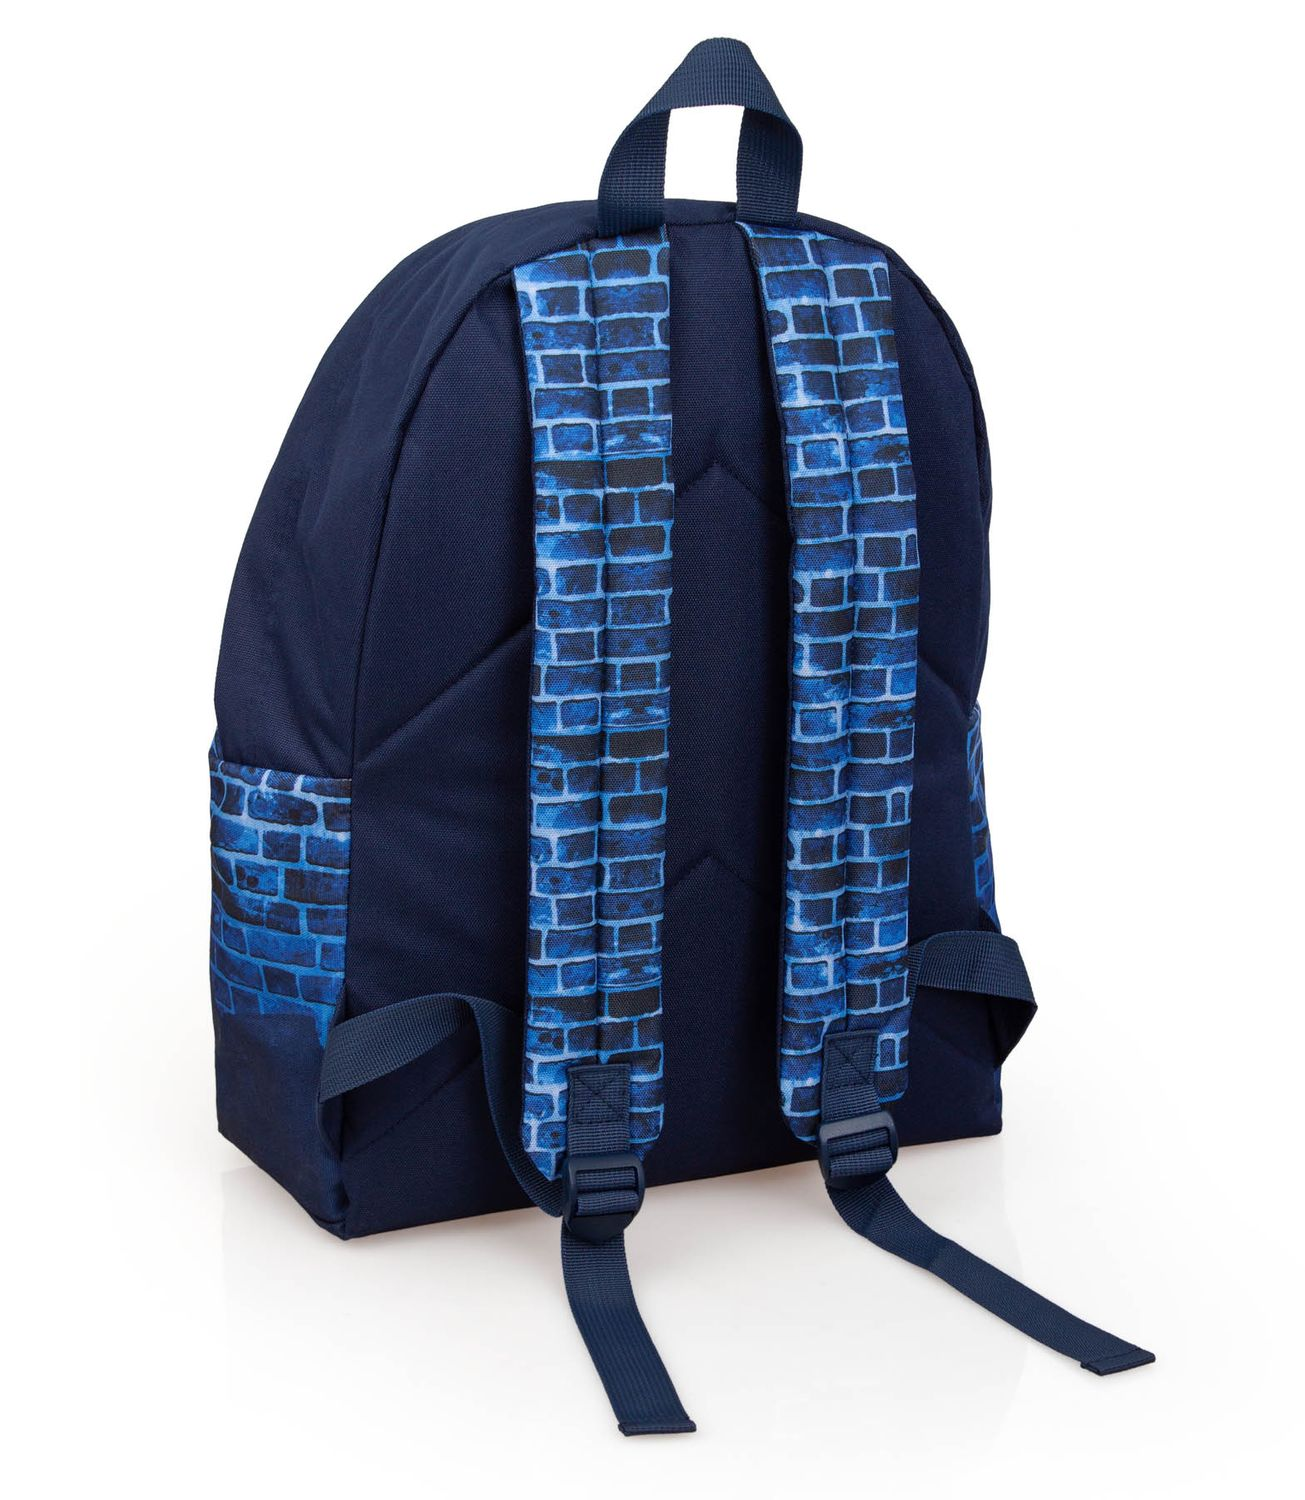 Backpack Rucksack GRAFFITI GHETTO – image 2